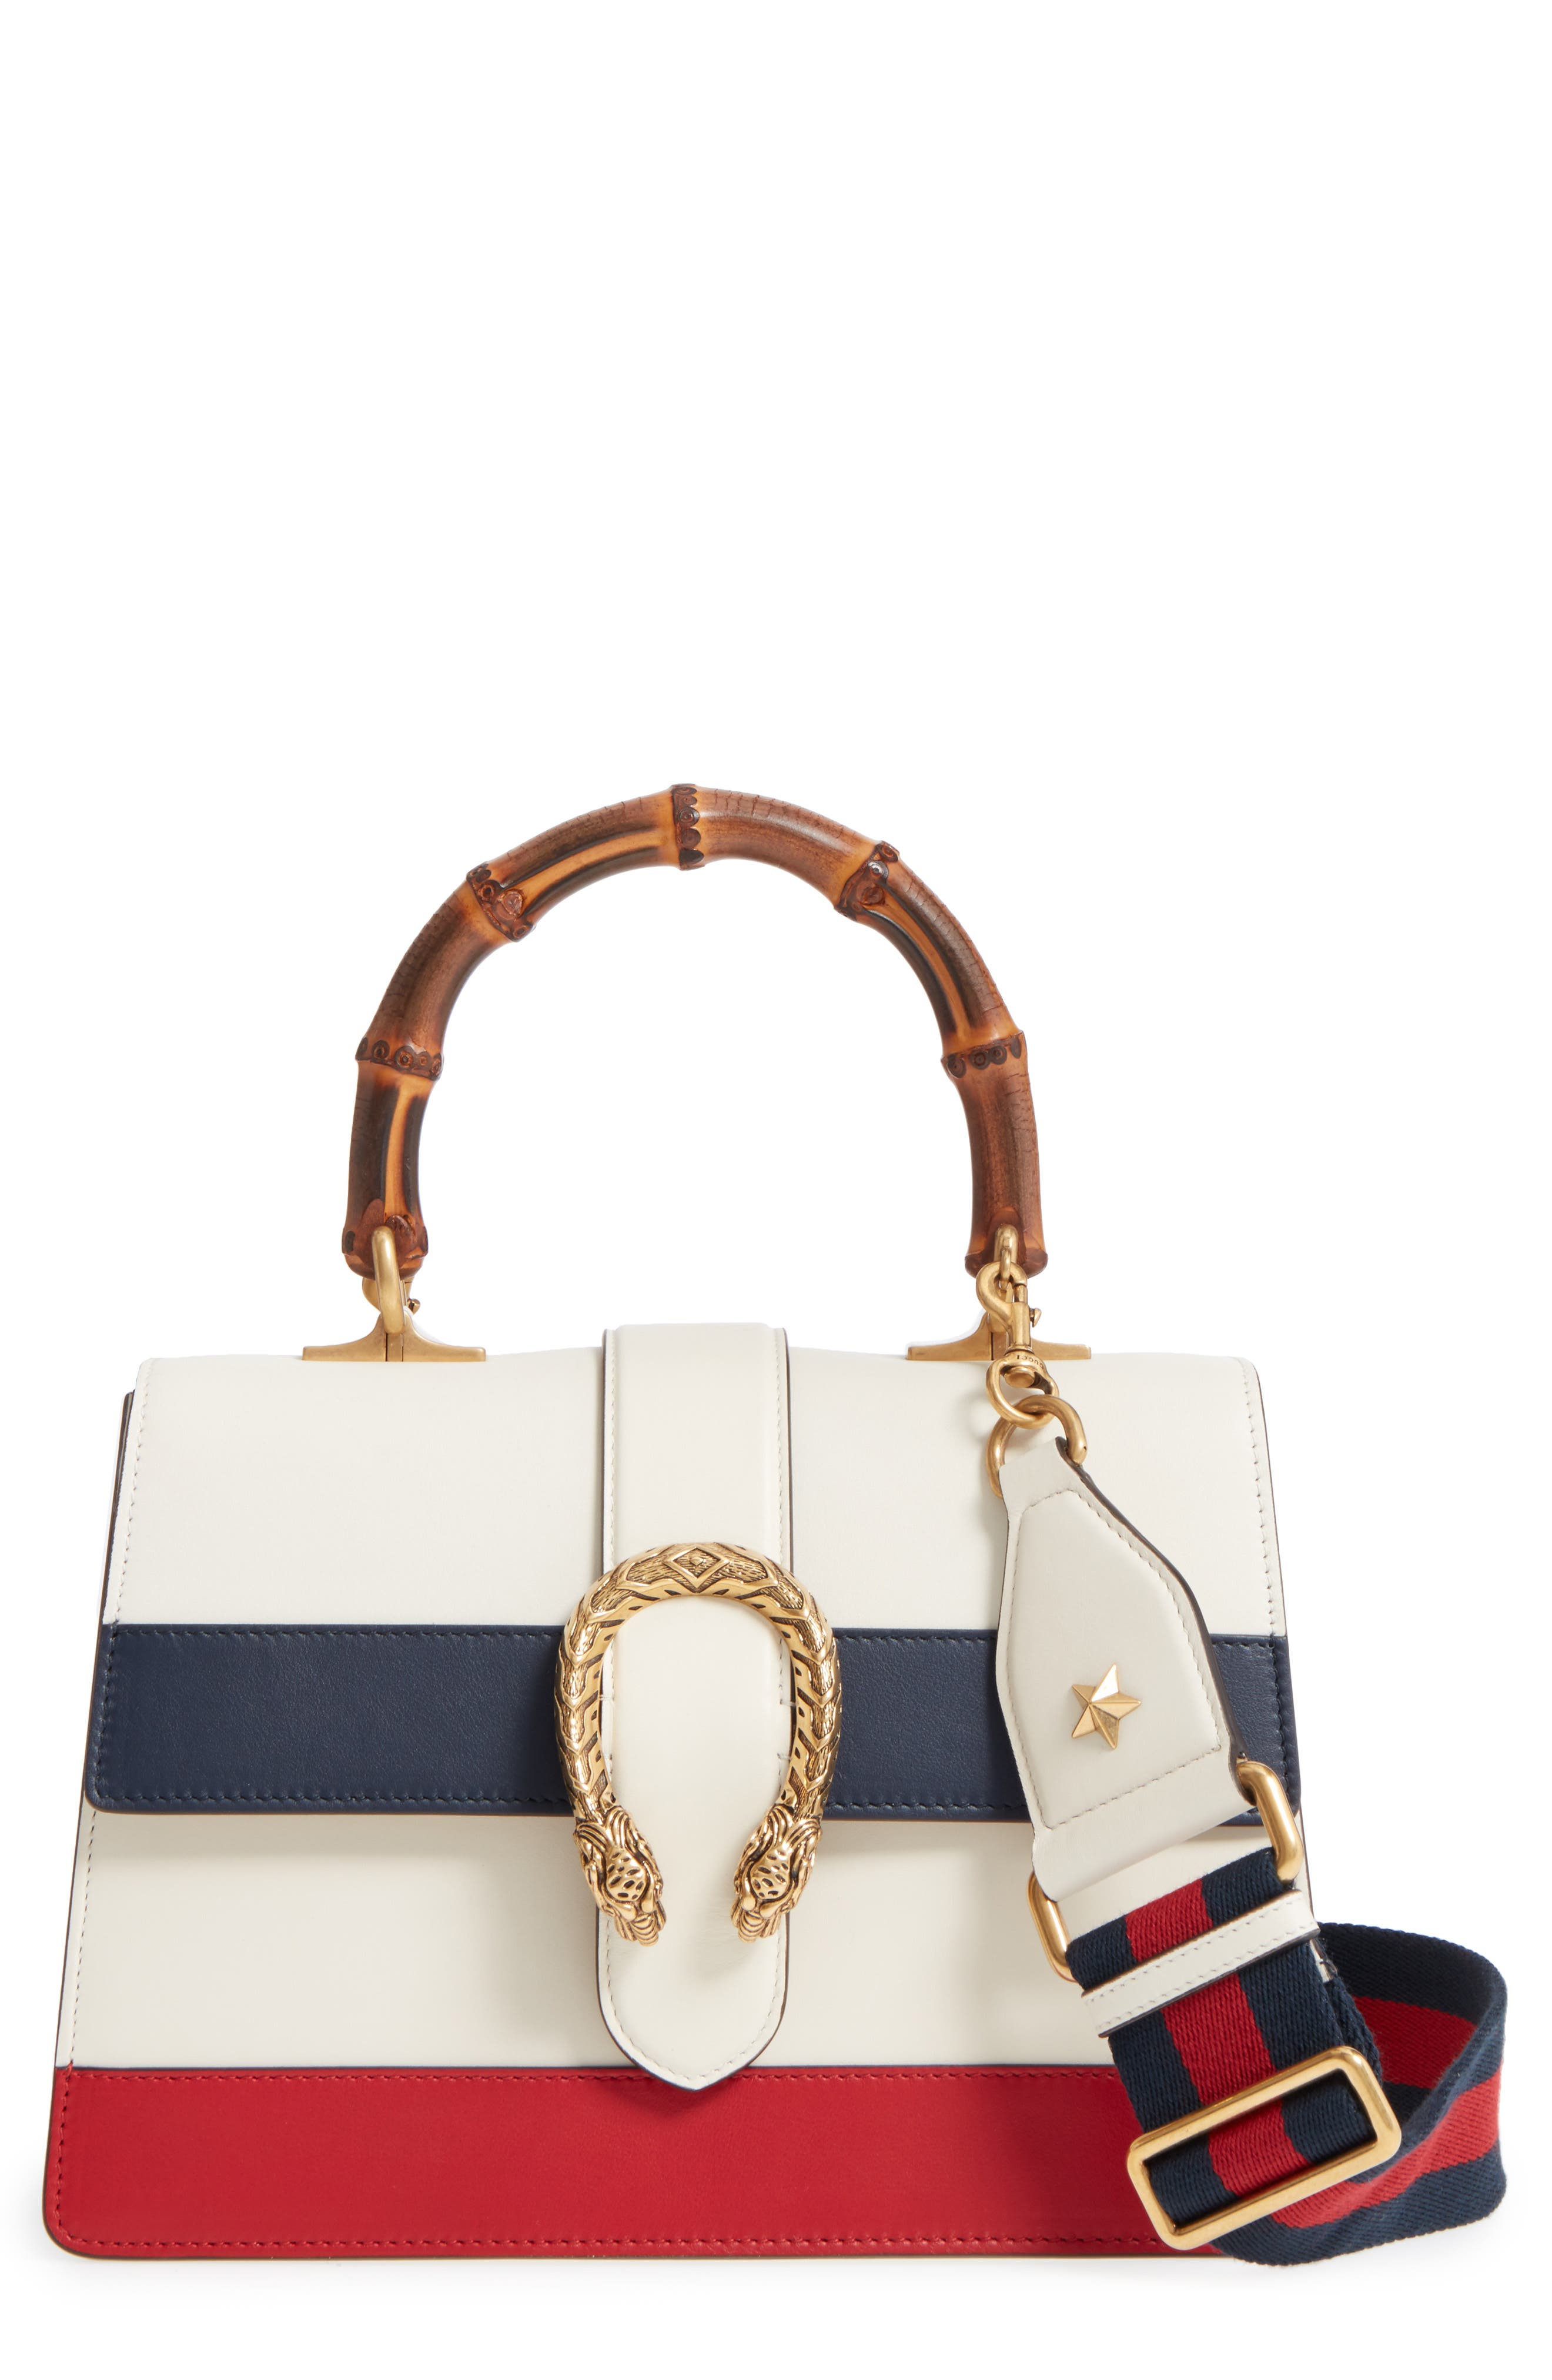 Small Dionysus Top Handle Leather Shoulder Bag,                             Main thumbnail 1, color,                             MYSTIC WHITE/ BLUE/ RED